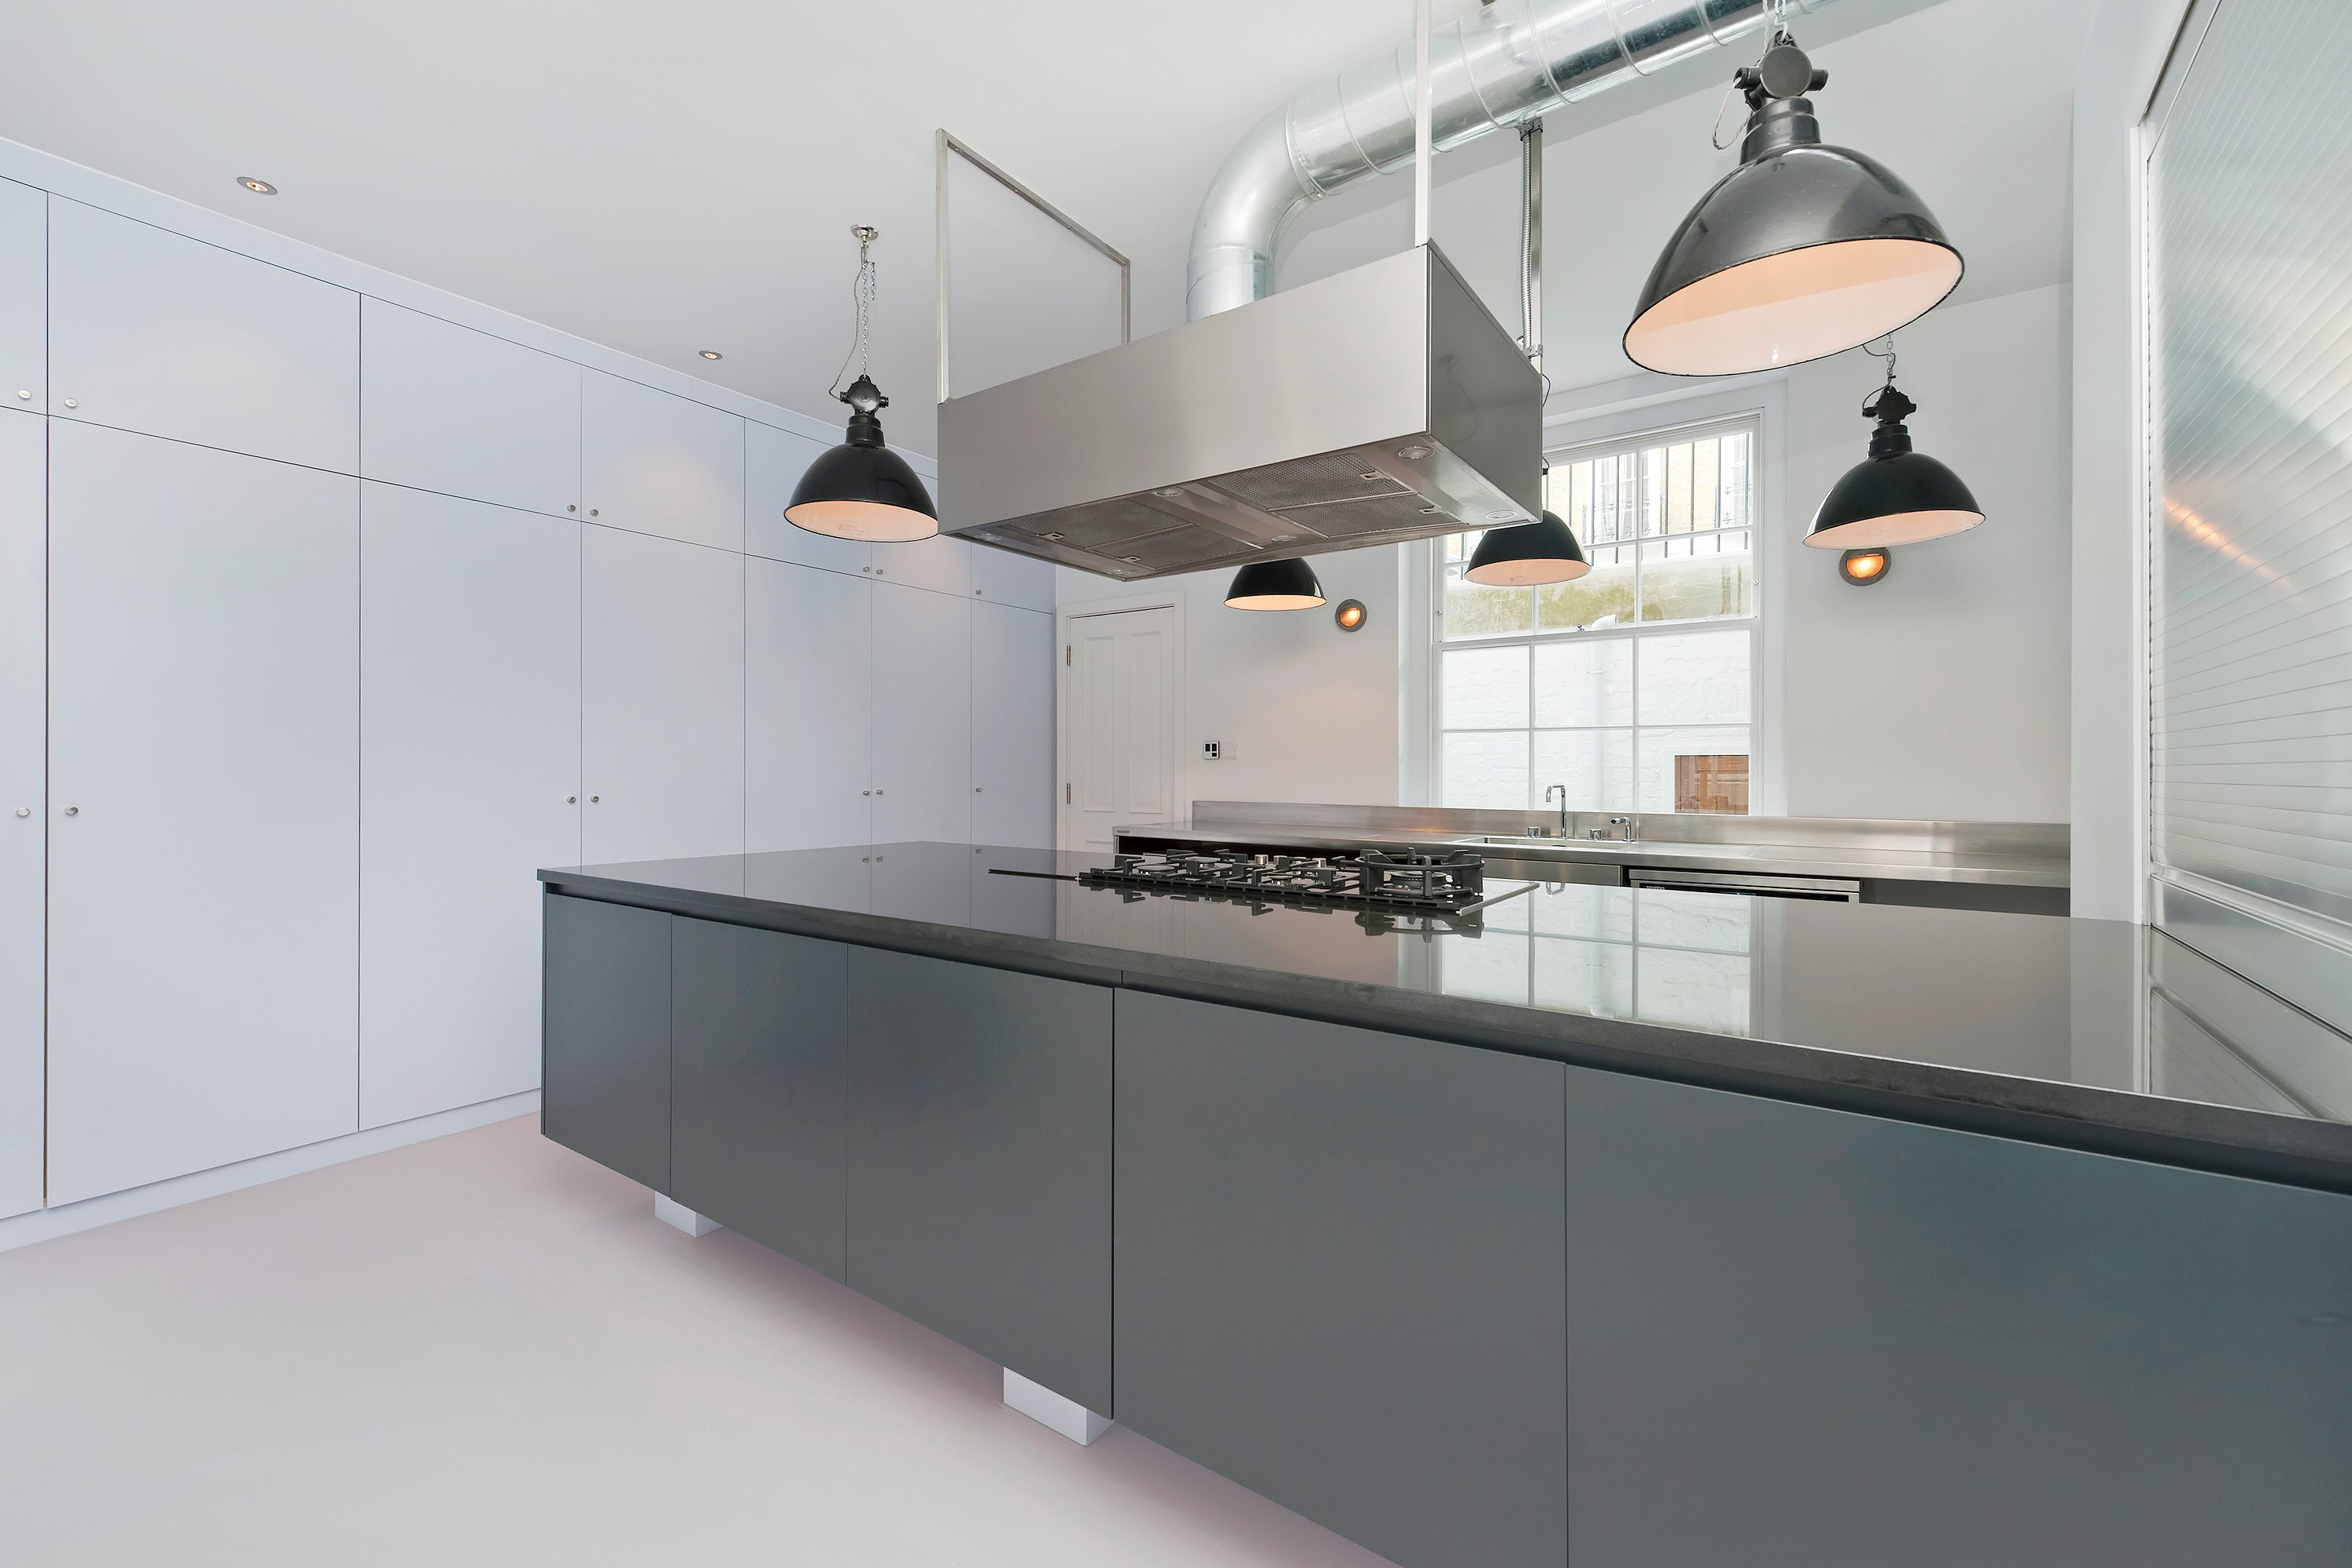 Fresh Large floor to ceiling built in cupboards including larder cupboards drawers on both sides of island aluminium shuttered shelves above island ideal for